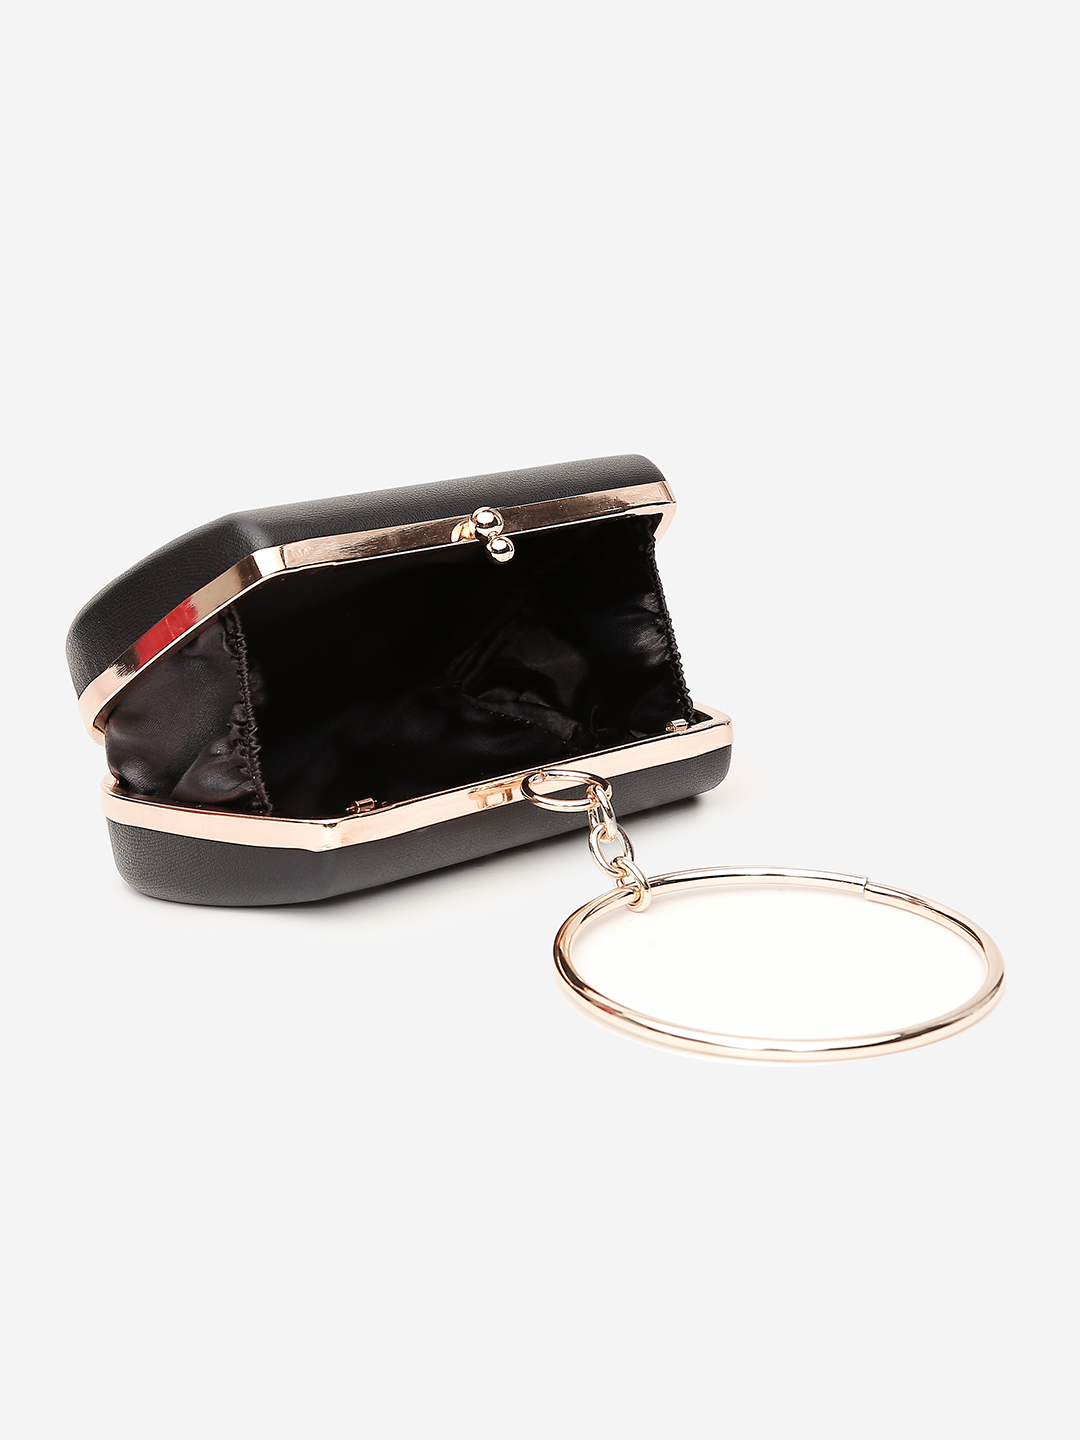 Clutches-The Eye Catcher Black Clutch4